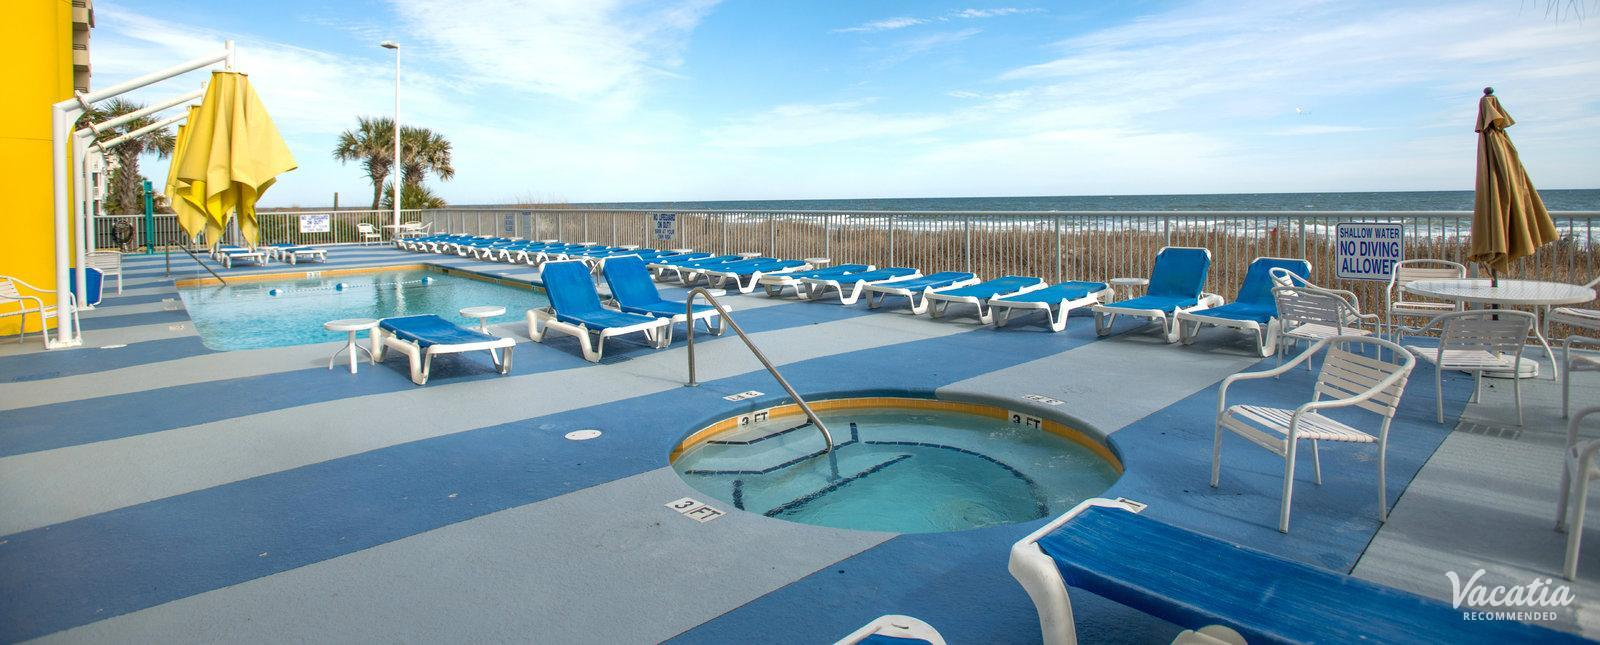 Seaside Resort poolside deck on beach